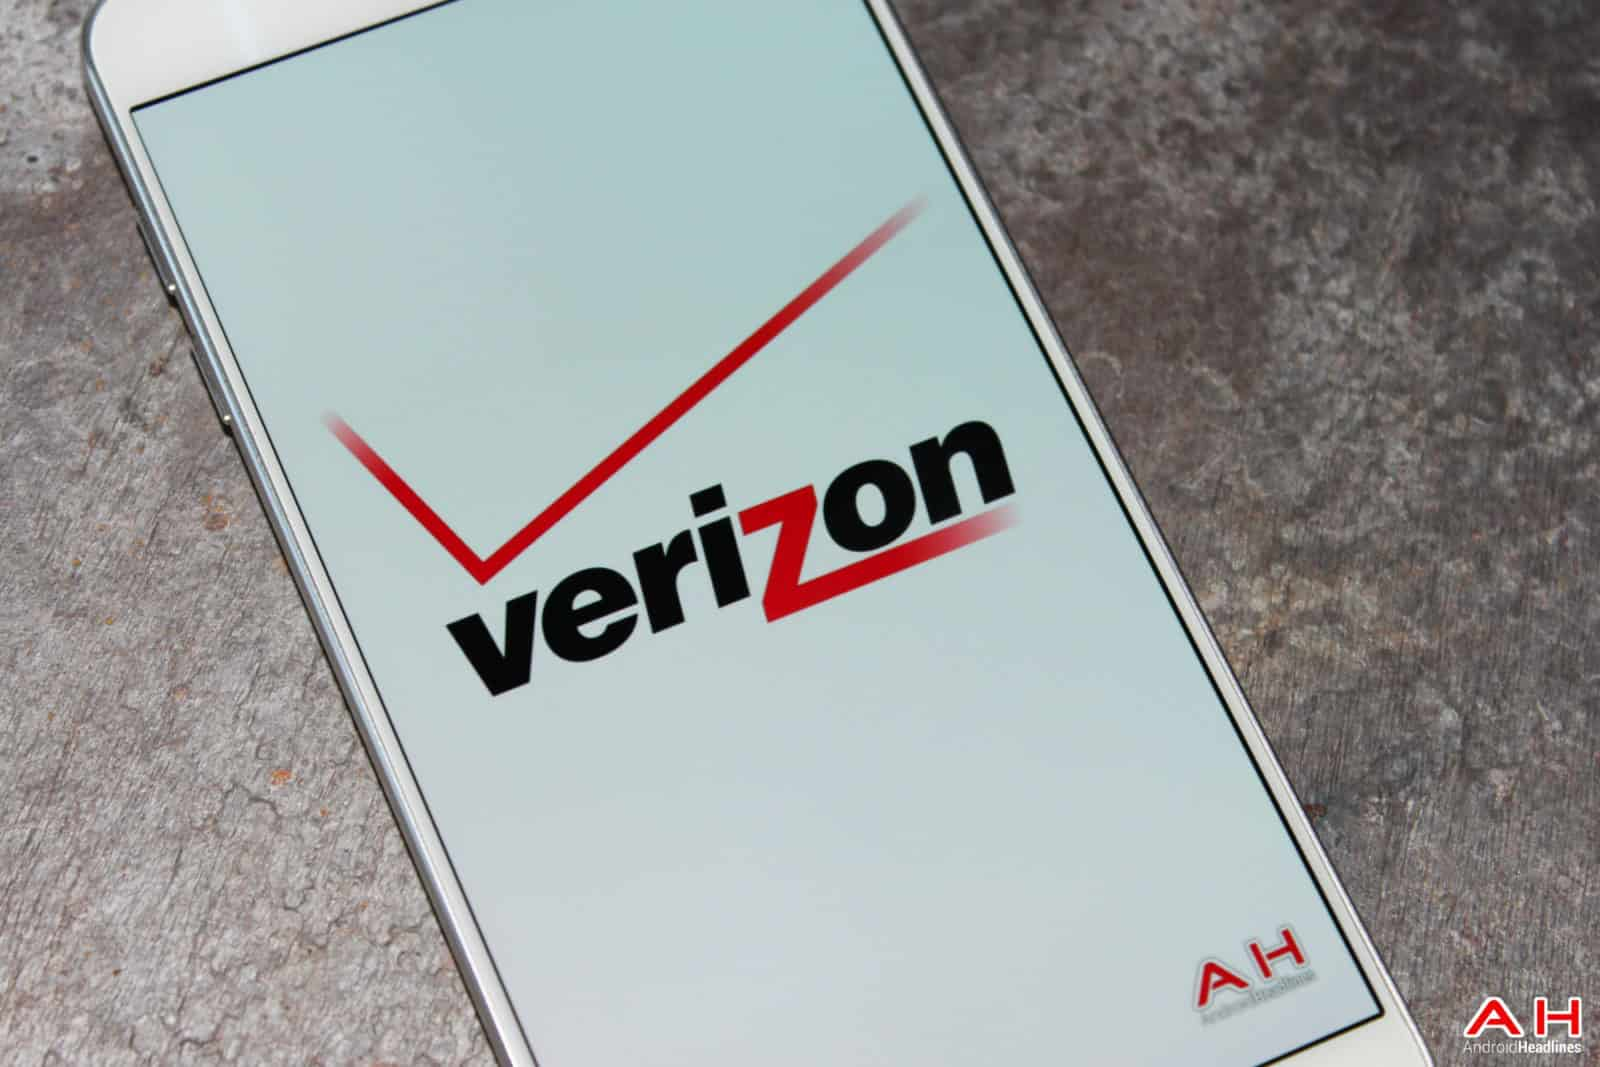 AH 2015 Verizon LOGO-110